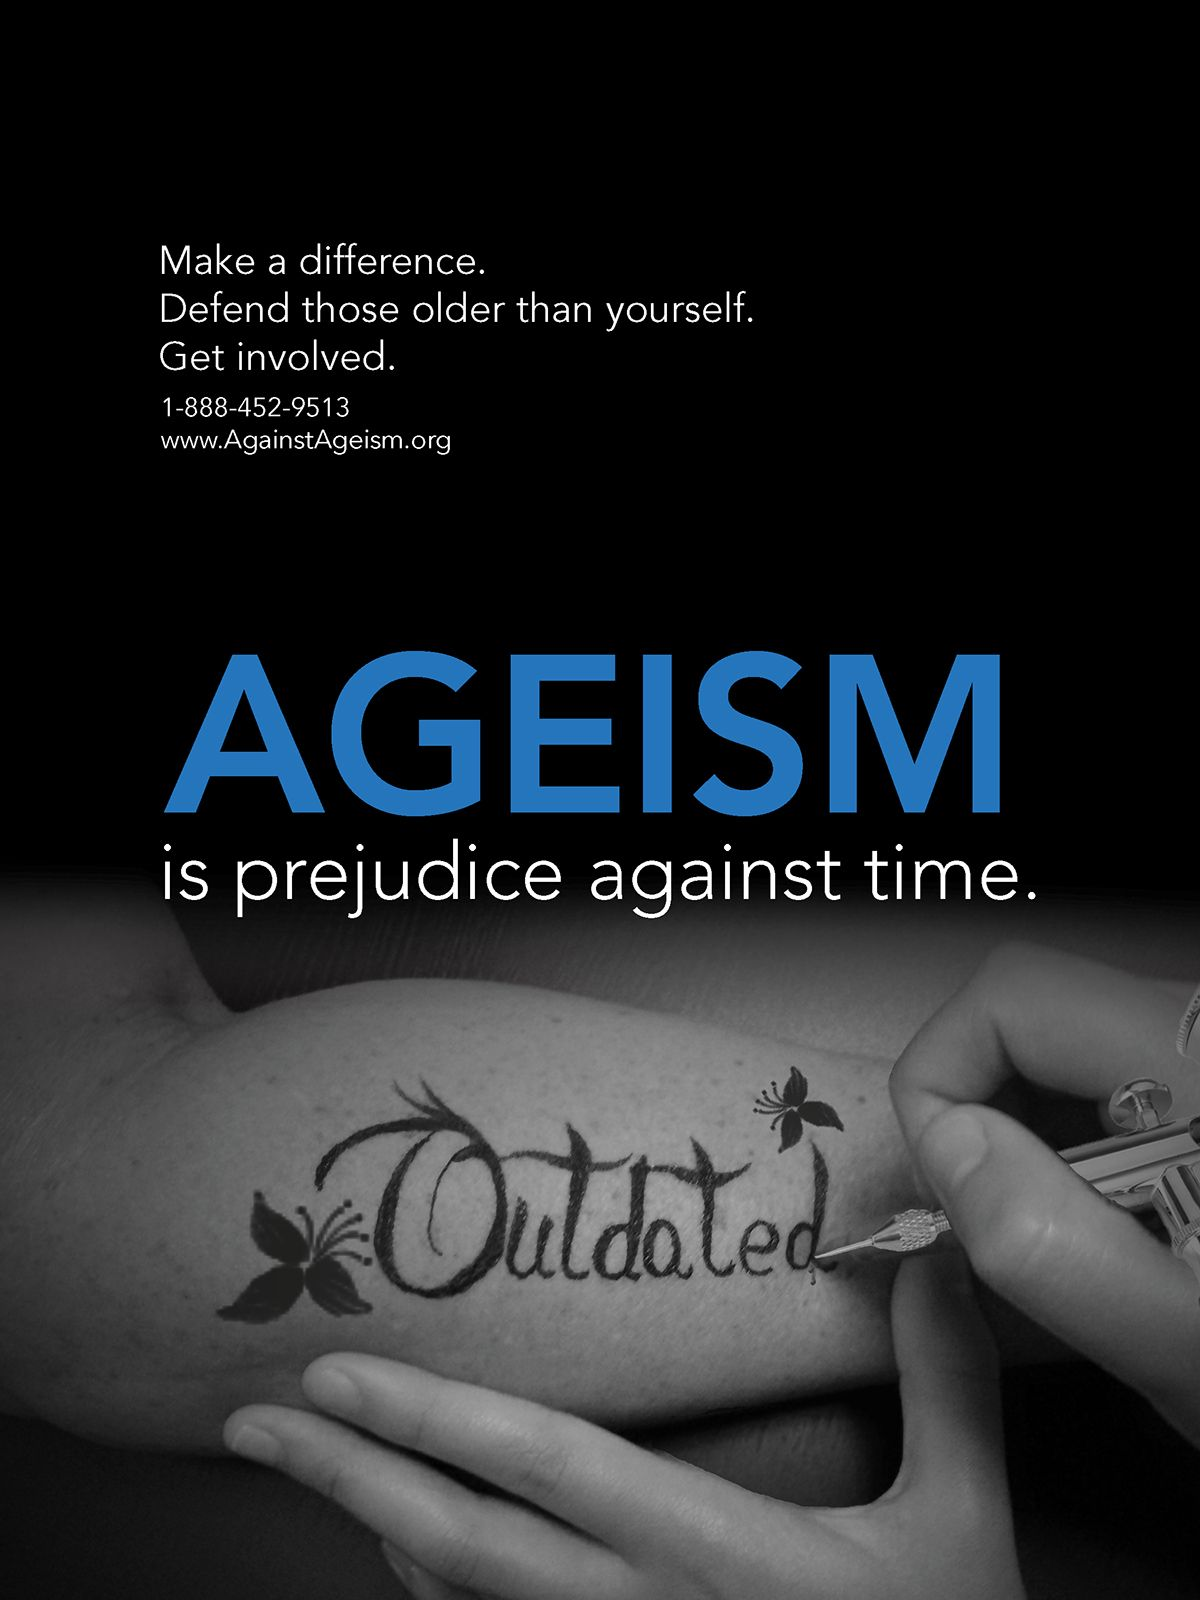 Ageism Psa Poster 2 On Behance Inclusion Quotes True Words Discrimination Quotes